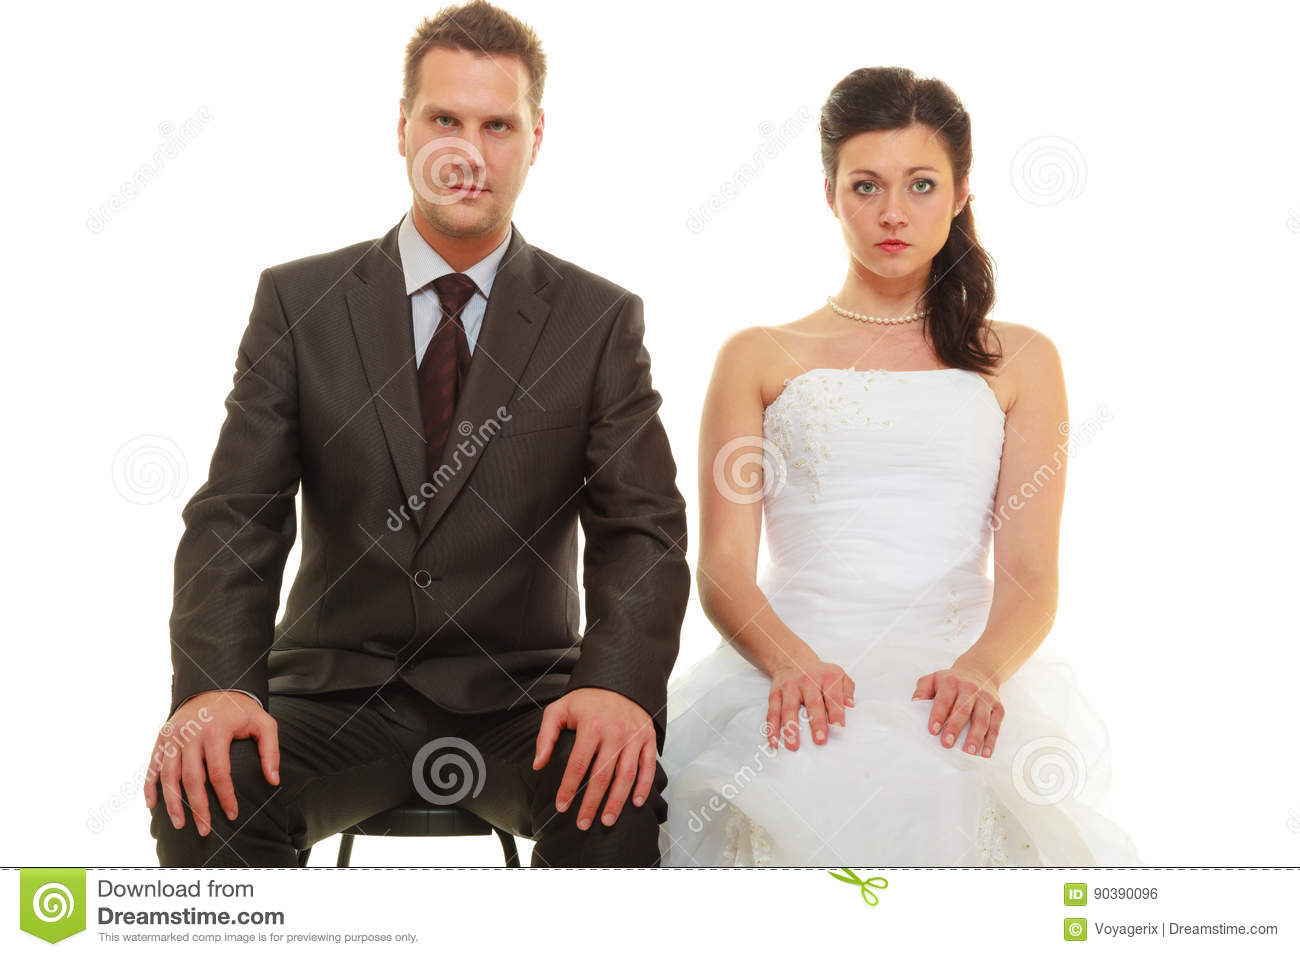 Bad Wedding Photos.Sad Groom And Bride Couple Waiting For Wedding Stock Photo Image